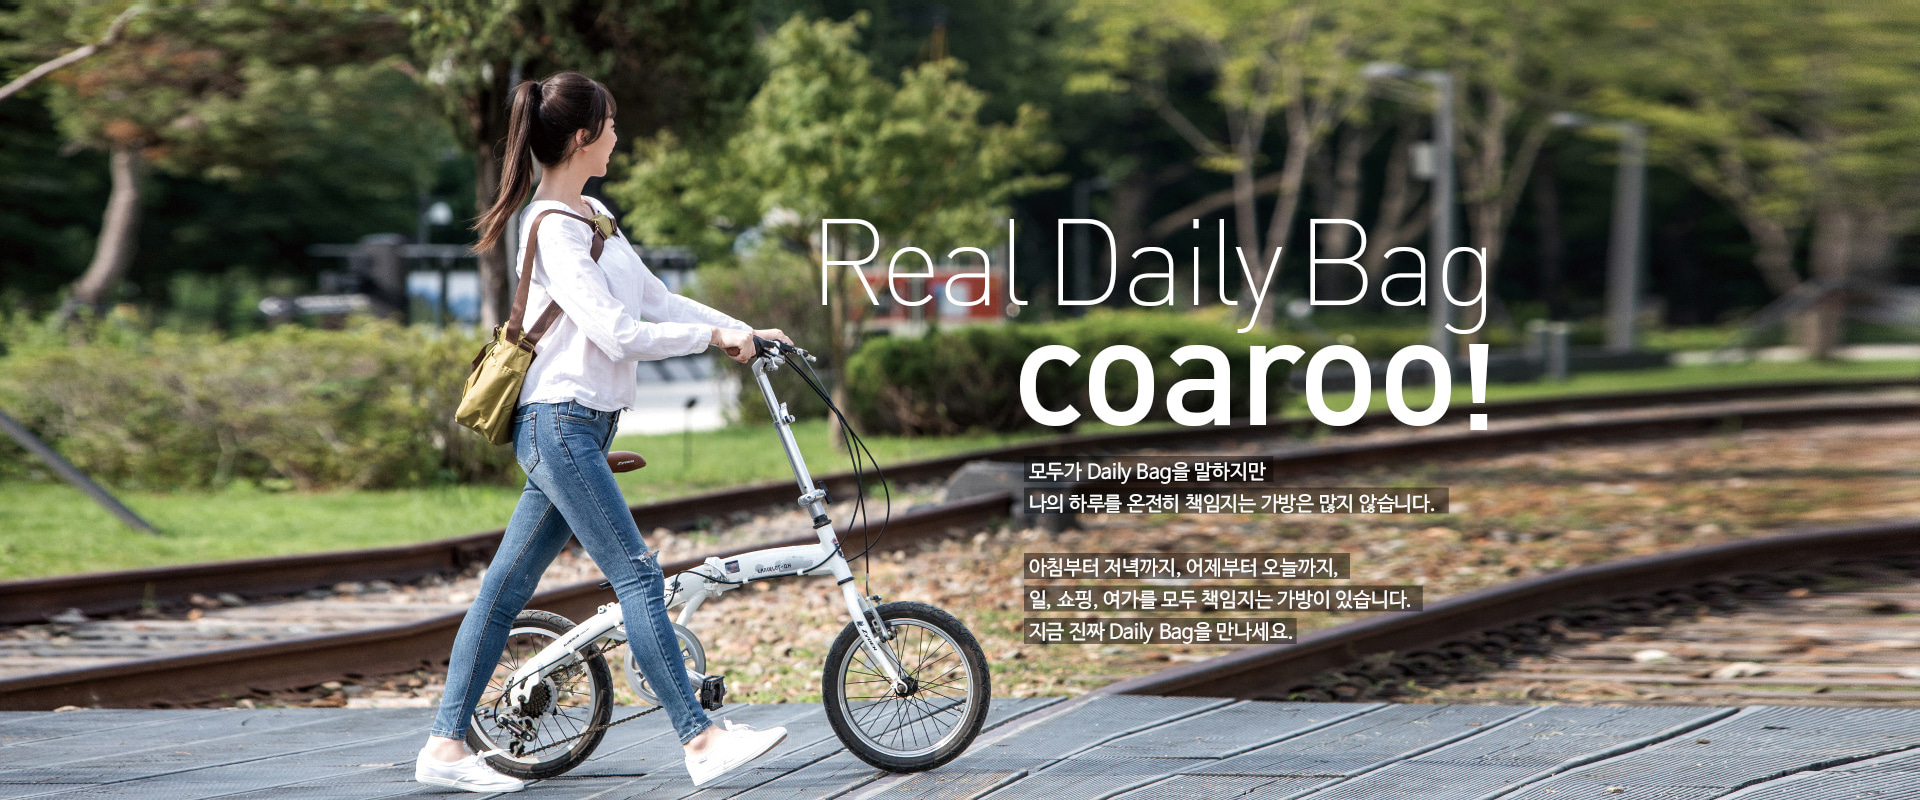 Real Daily Bag coaroo!